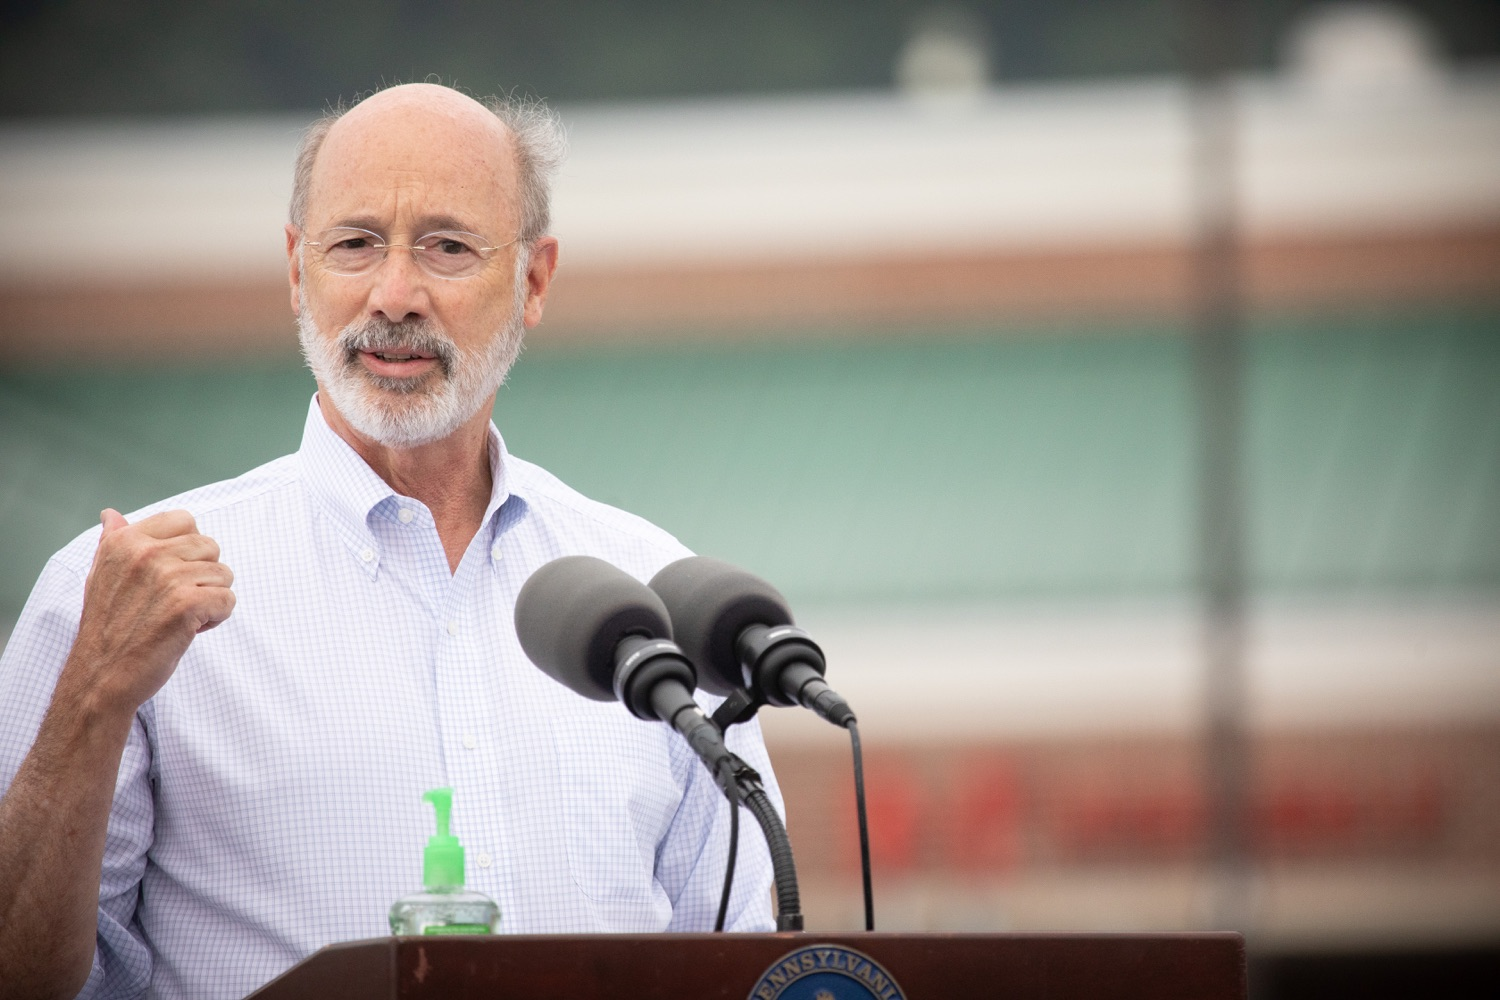 """<a href=""""https://filesource.wostreaming.net/commonwealthofpa/photo/18166_gov_cares_act_dz_10.jpg"""" target=""""_blank"""">⇣Download Photo<br></a>Pennsylvania Governor Tom Wolf speaking at the announcement.  Today, Governor Tom Wolf announced the availability of $50 million in grant funding to help employers provide hazard pay to employees in life-sustaining occupations during the COVID-19 pandemic. Hazard pay is intended to keep front-line employees working in vital industry sectors across Pennsylvania.  Harrisburg, PA  July 16, 2020"""